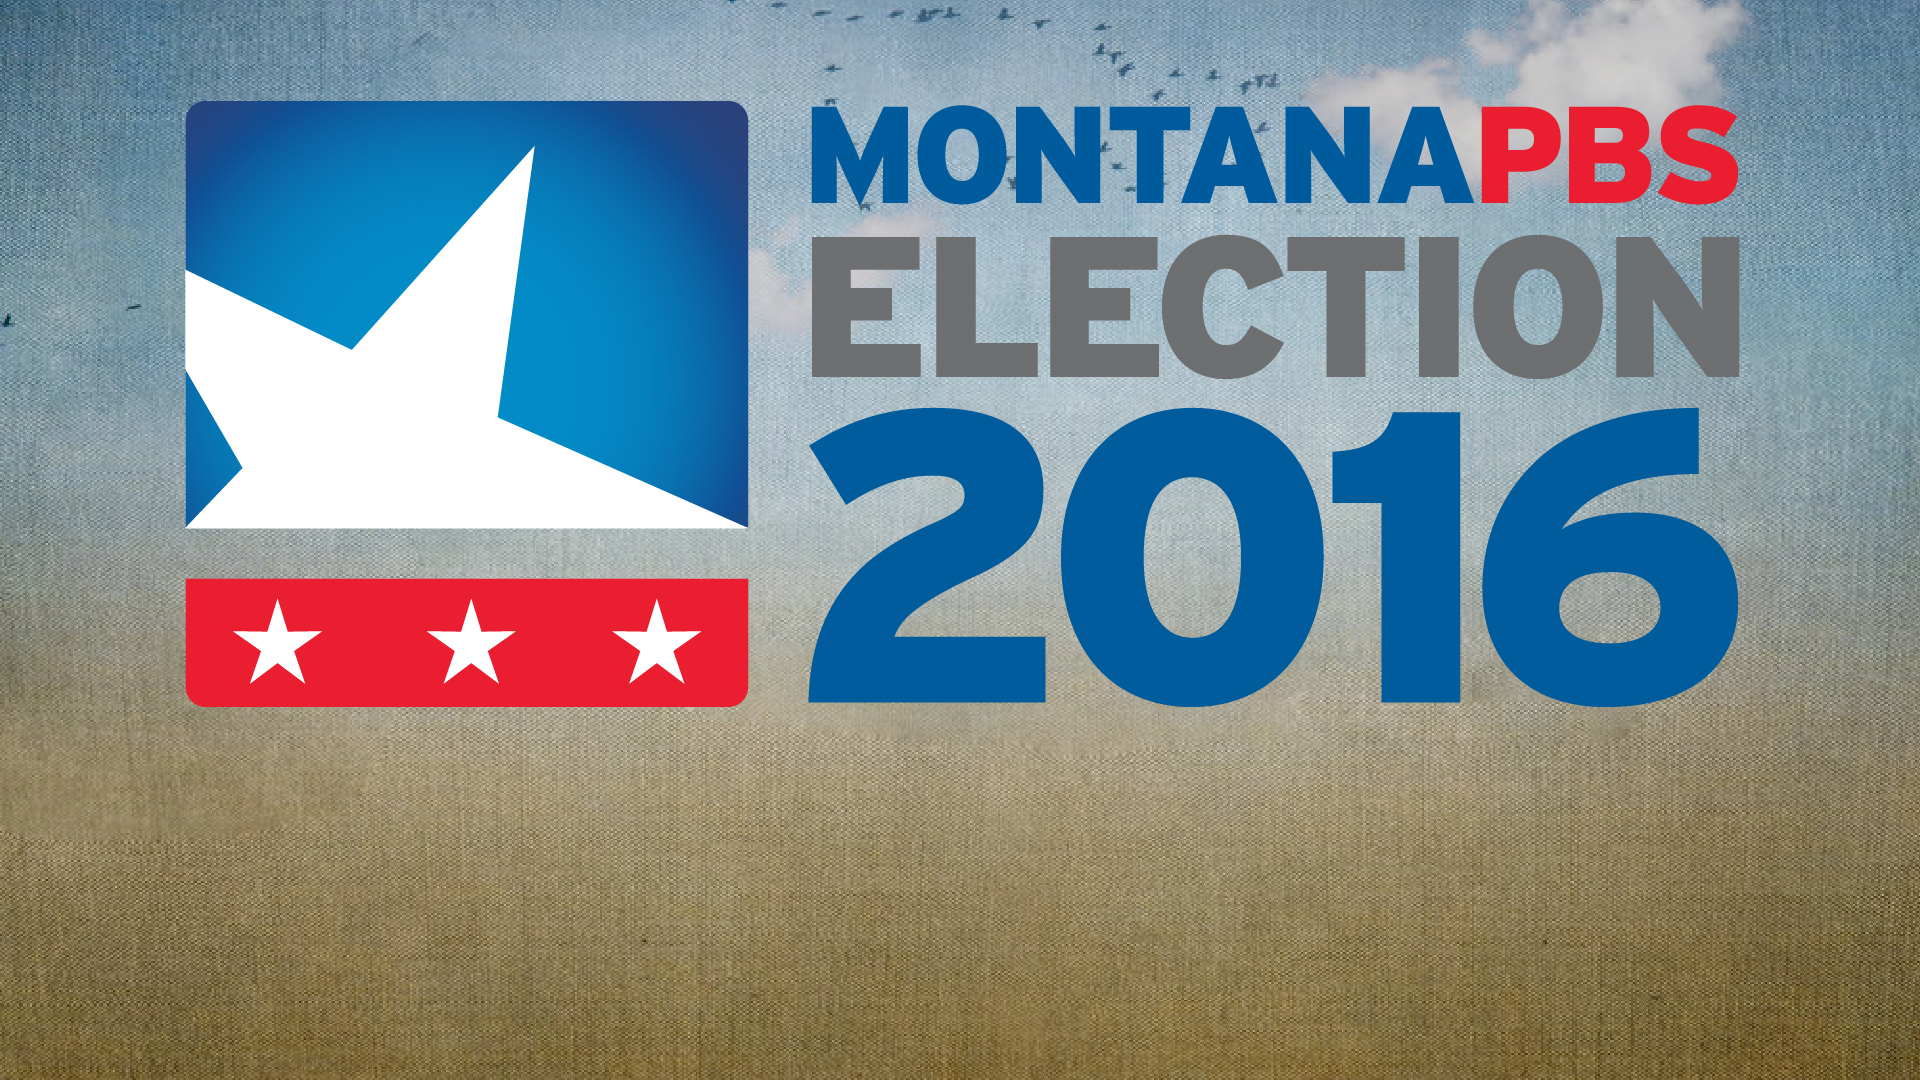 Join MontanaPBS for Primary Night coverage